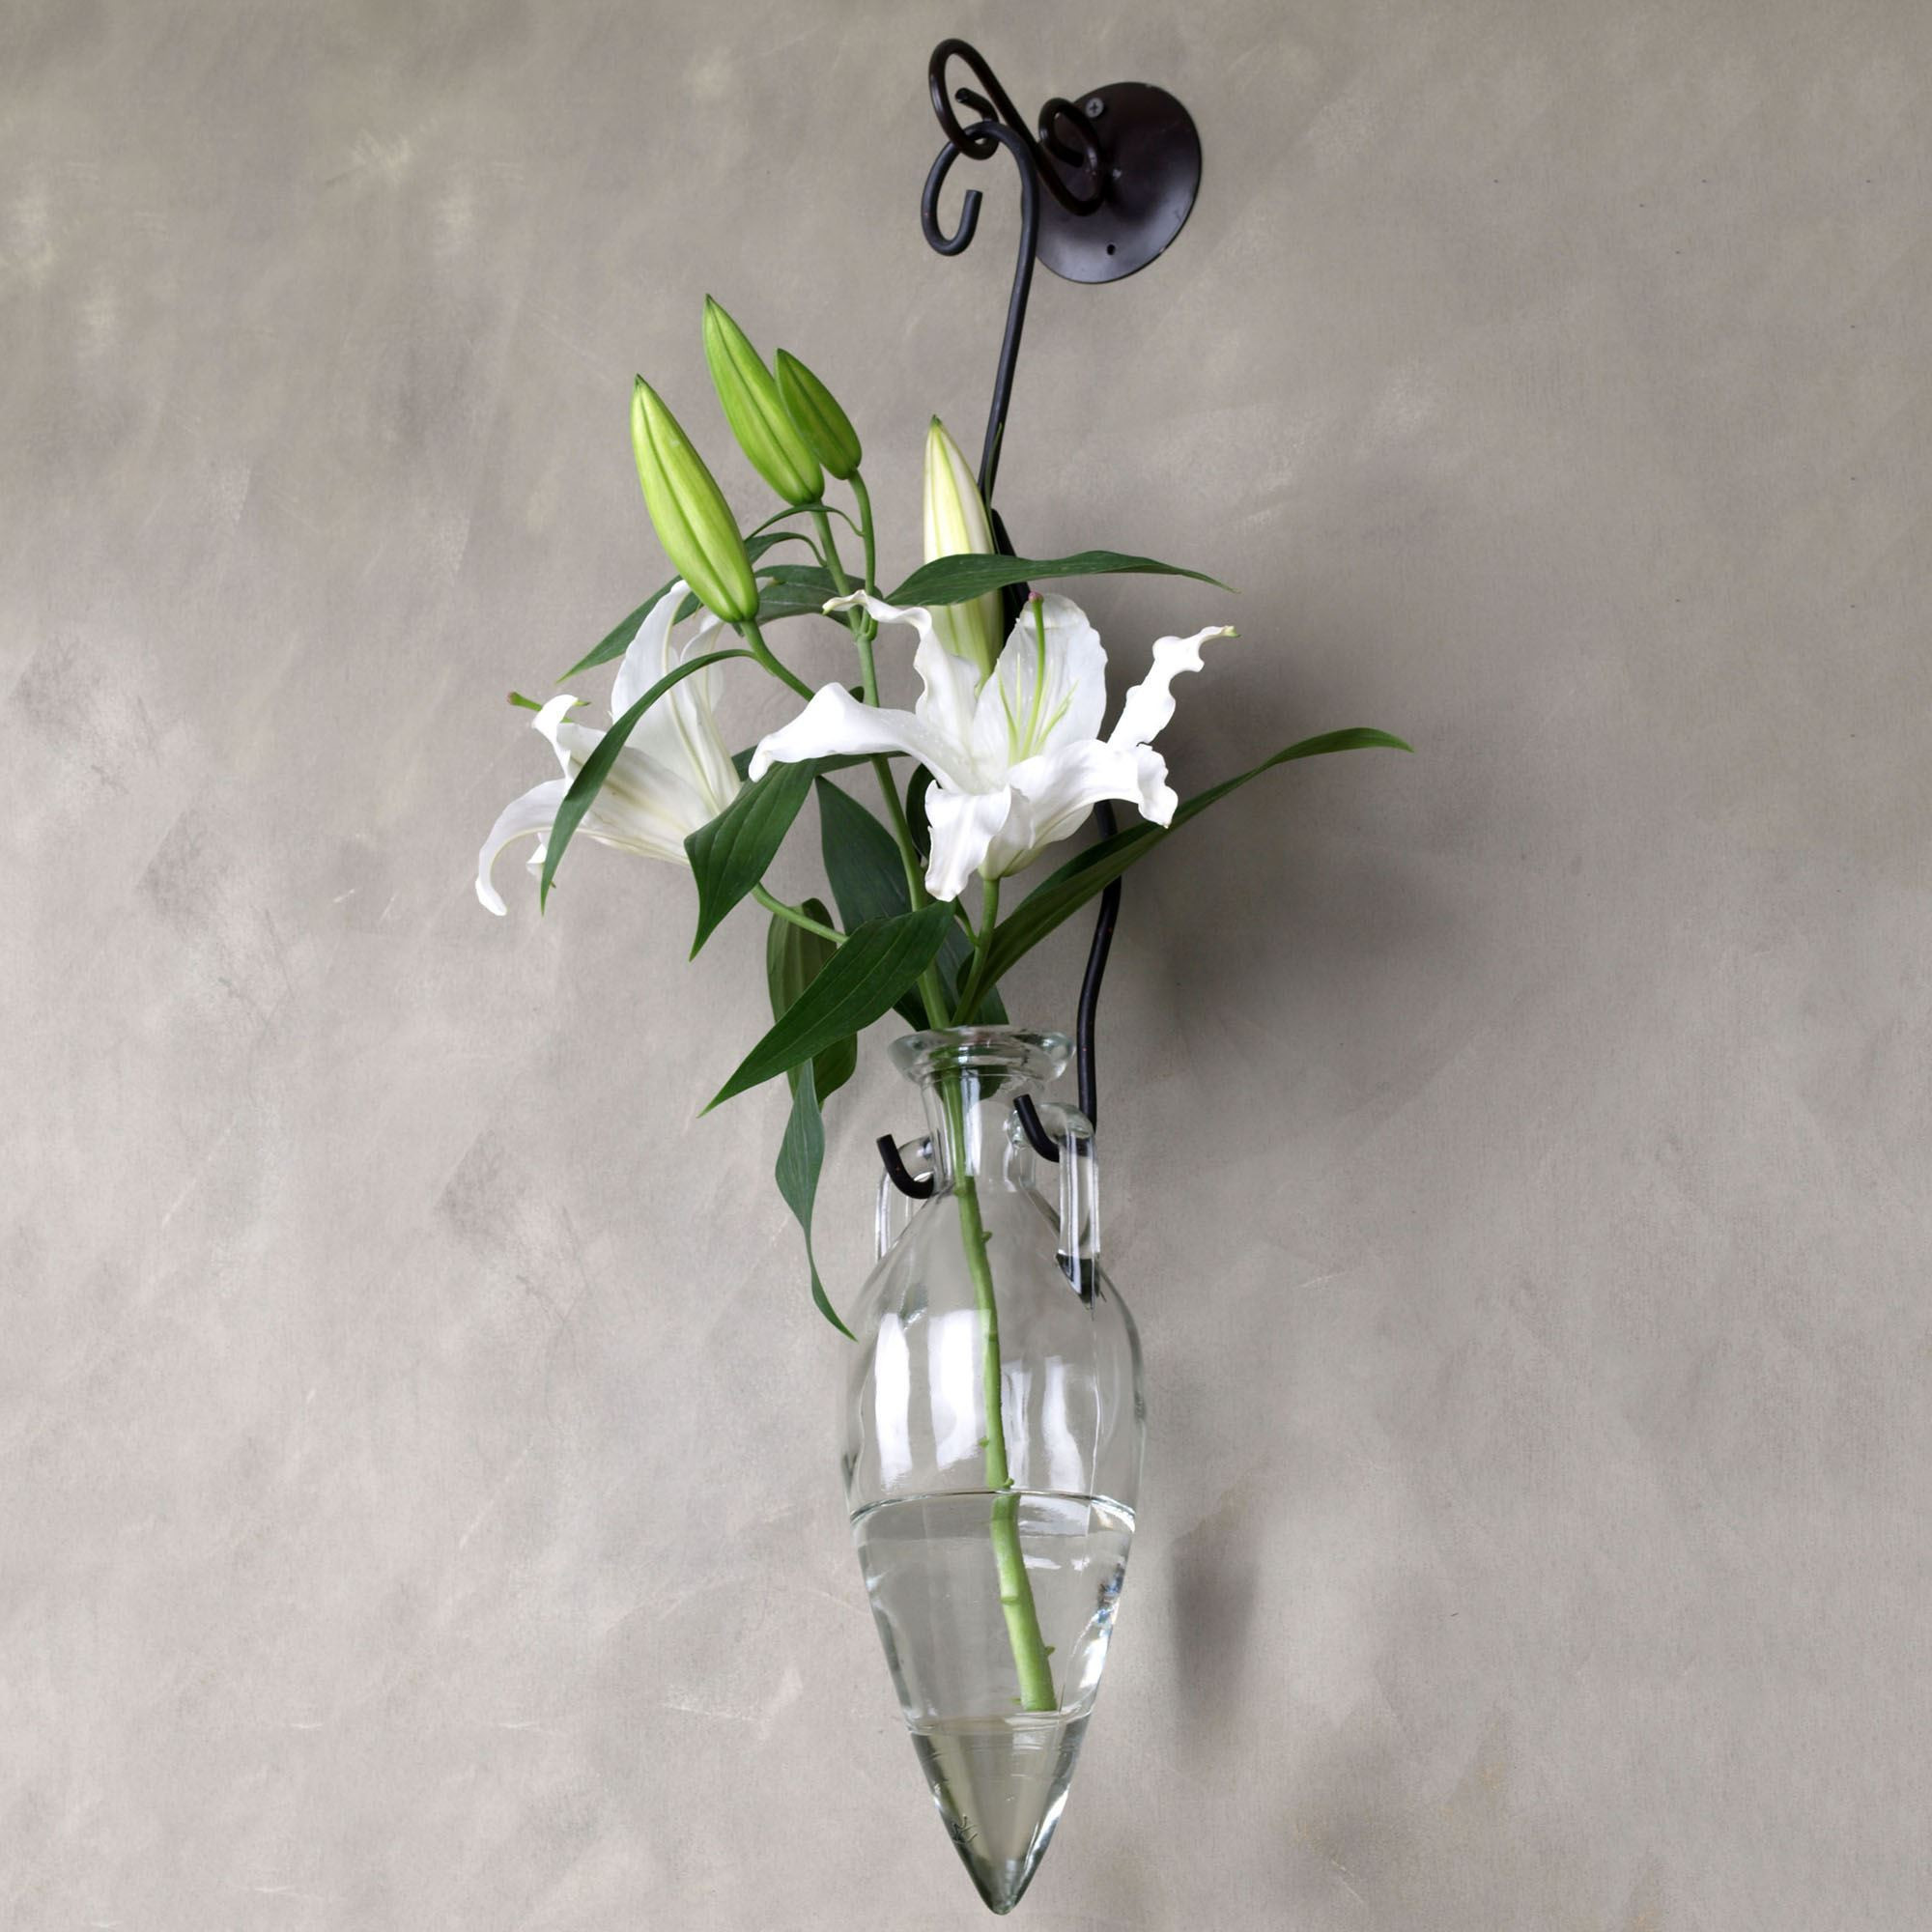 Flower Vase Michaels Of Metal Vase Decor Stock H Vases Wall Hanging Flower Vase Newspaper I for H Vases Wall Hanging Flower Vase Newspaper I 0d Scheme Wall Scheme